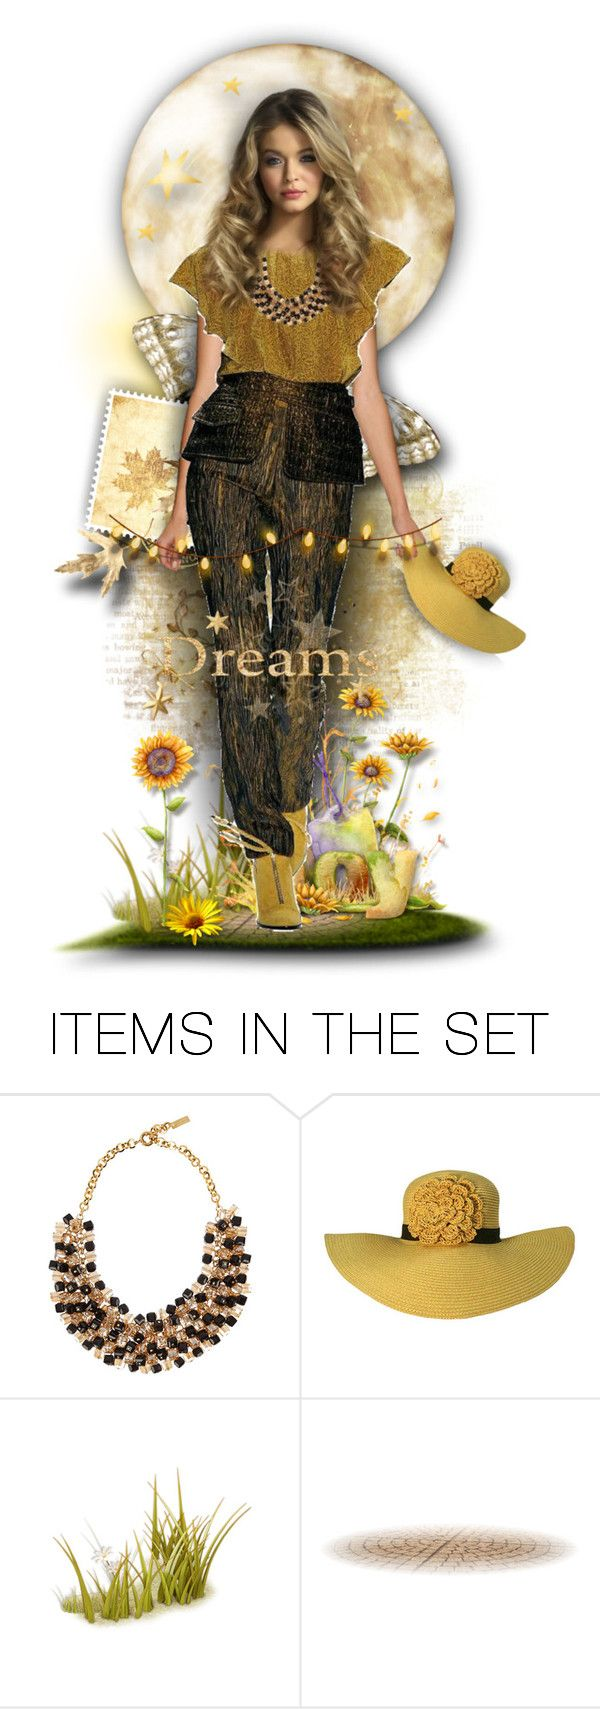 """Susie Sunflower"" by tracireuer ❤ liked on Polyvore featuring art"